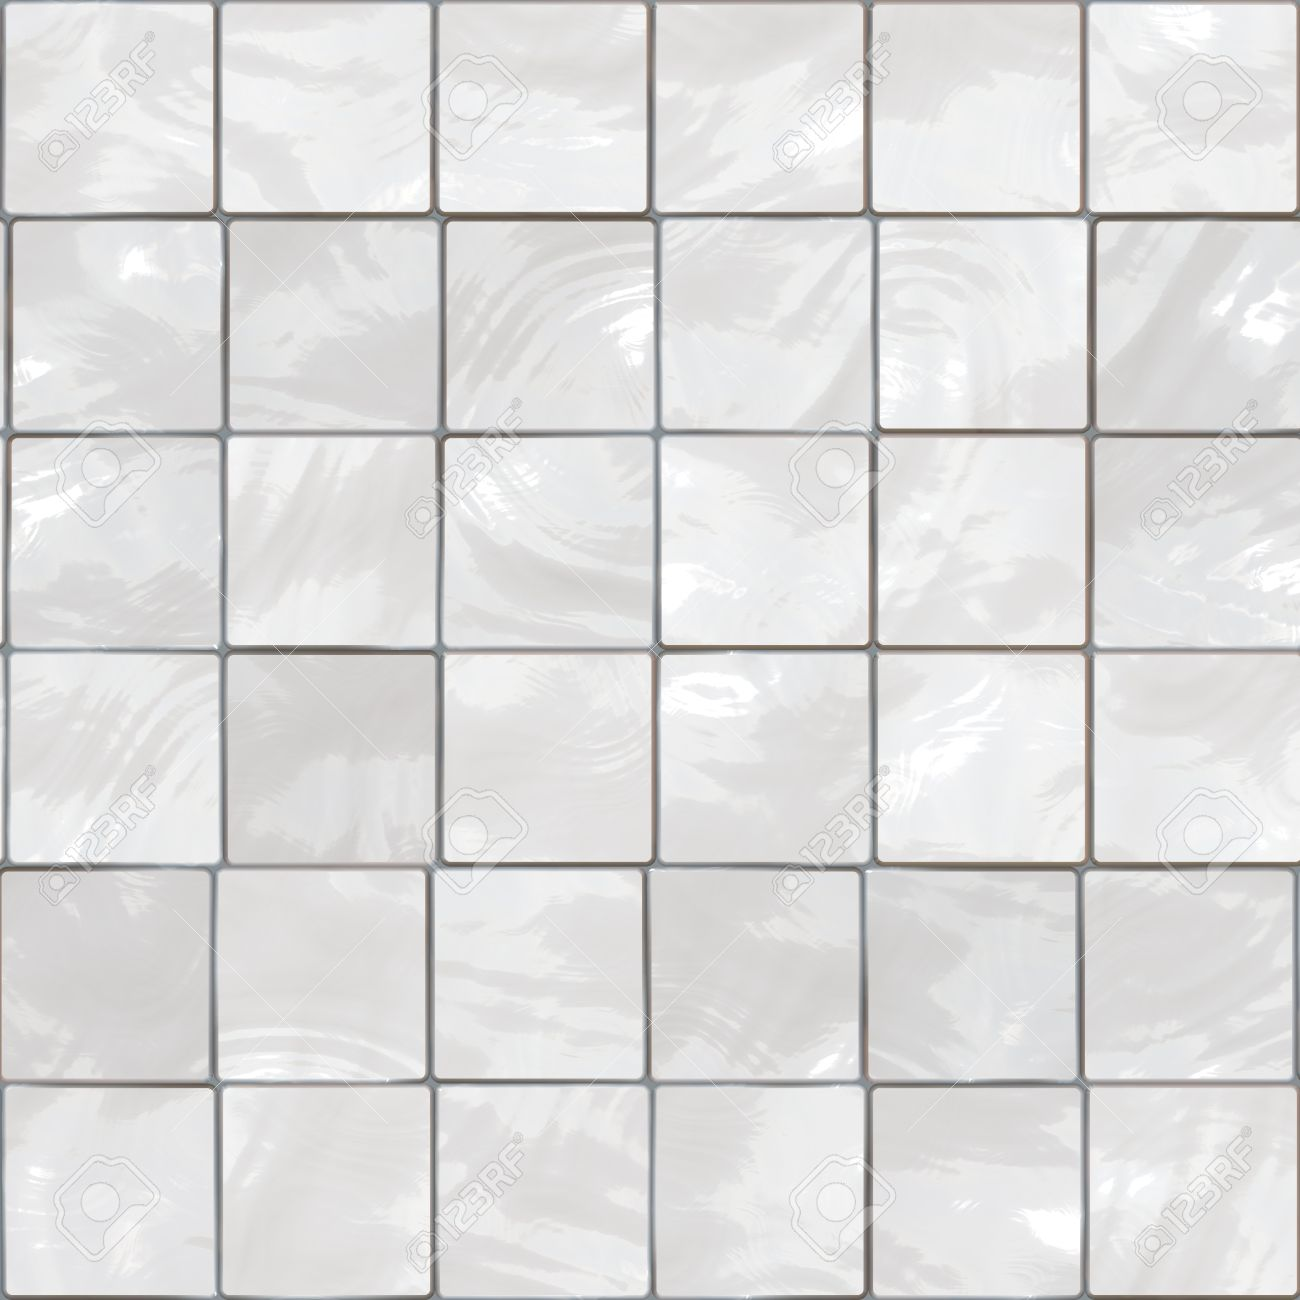 Bathroom Tiles Background white bathroom tiles background - this tiles seamlessly. stock